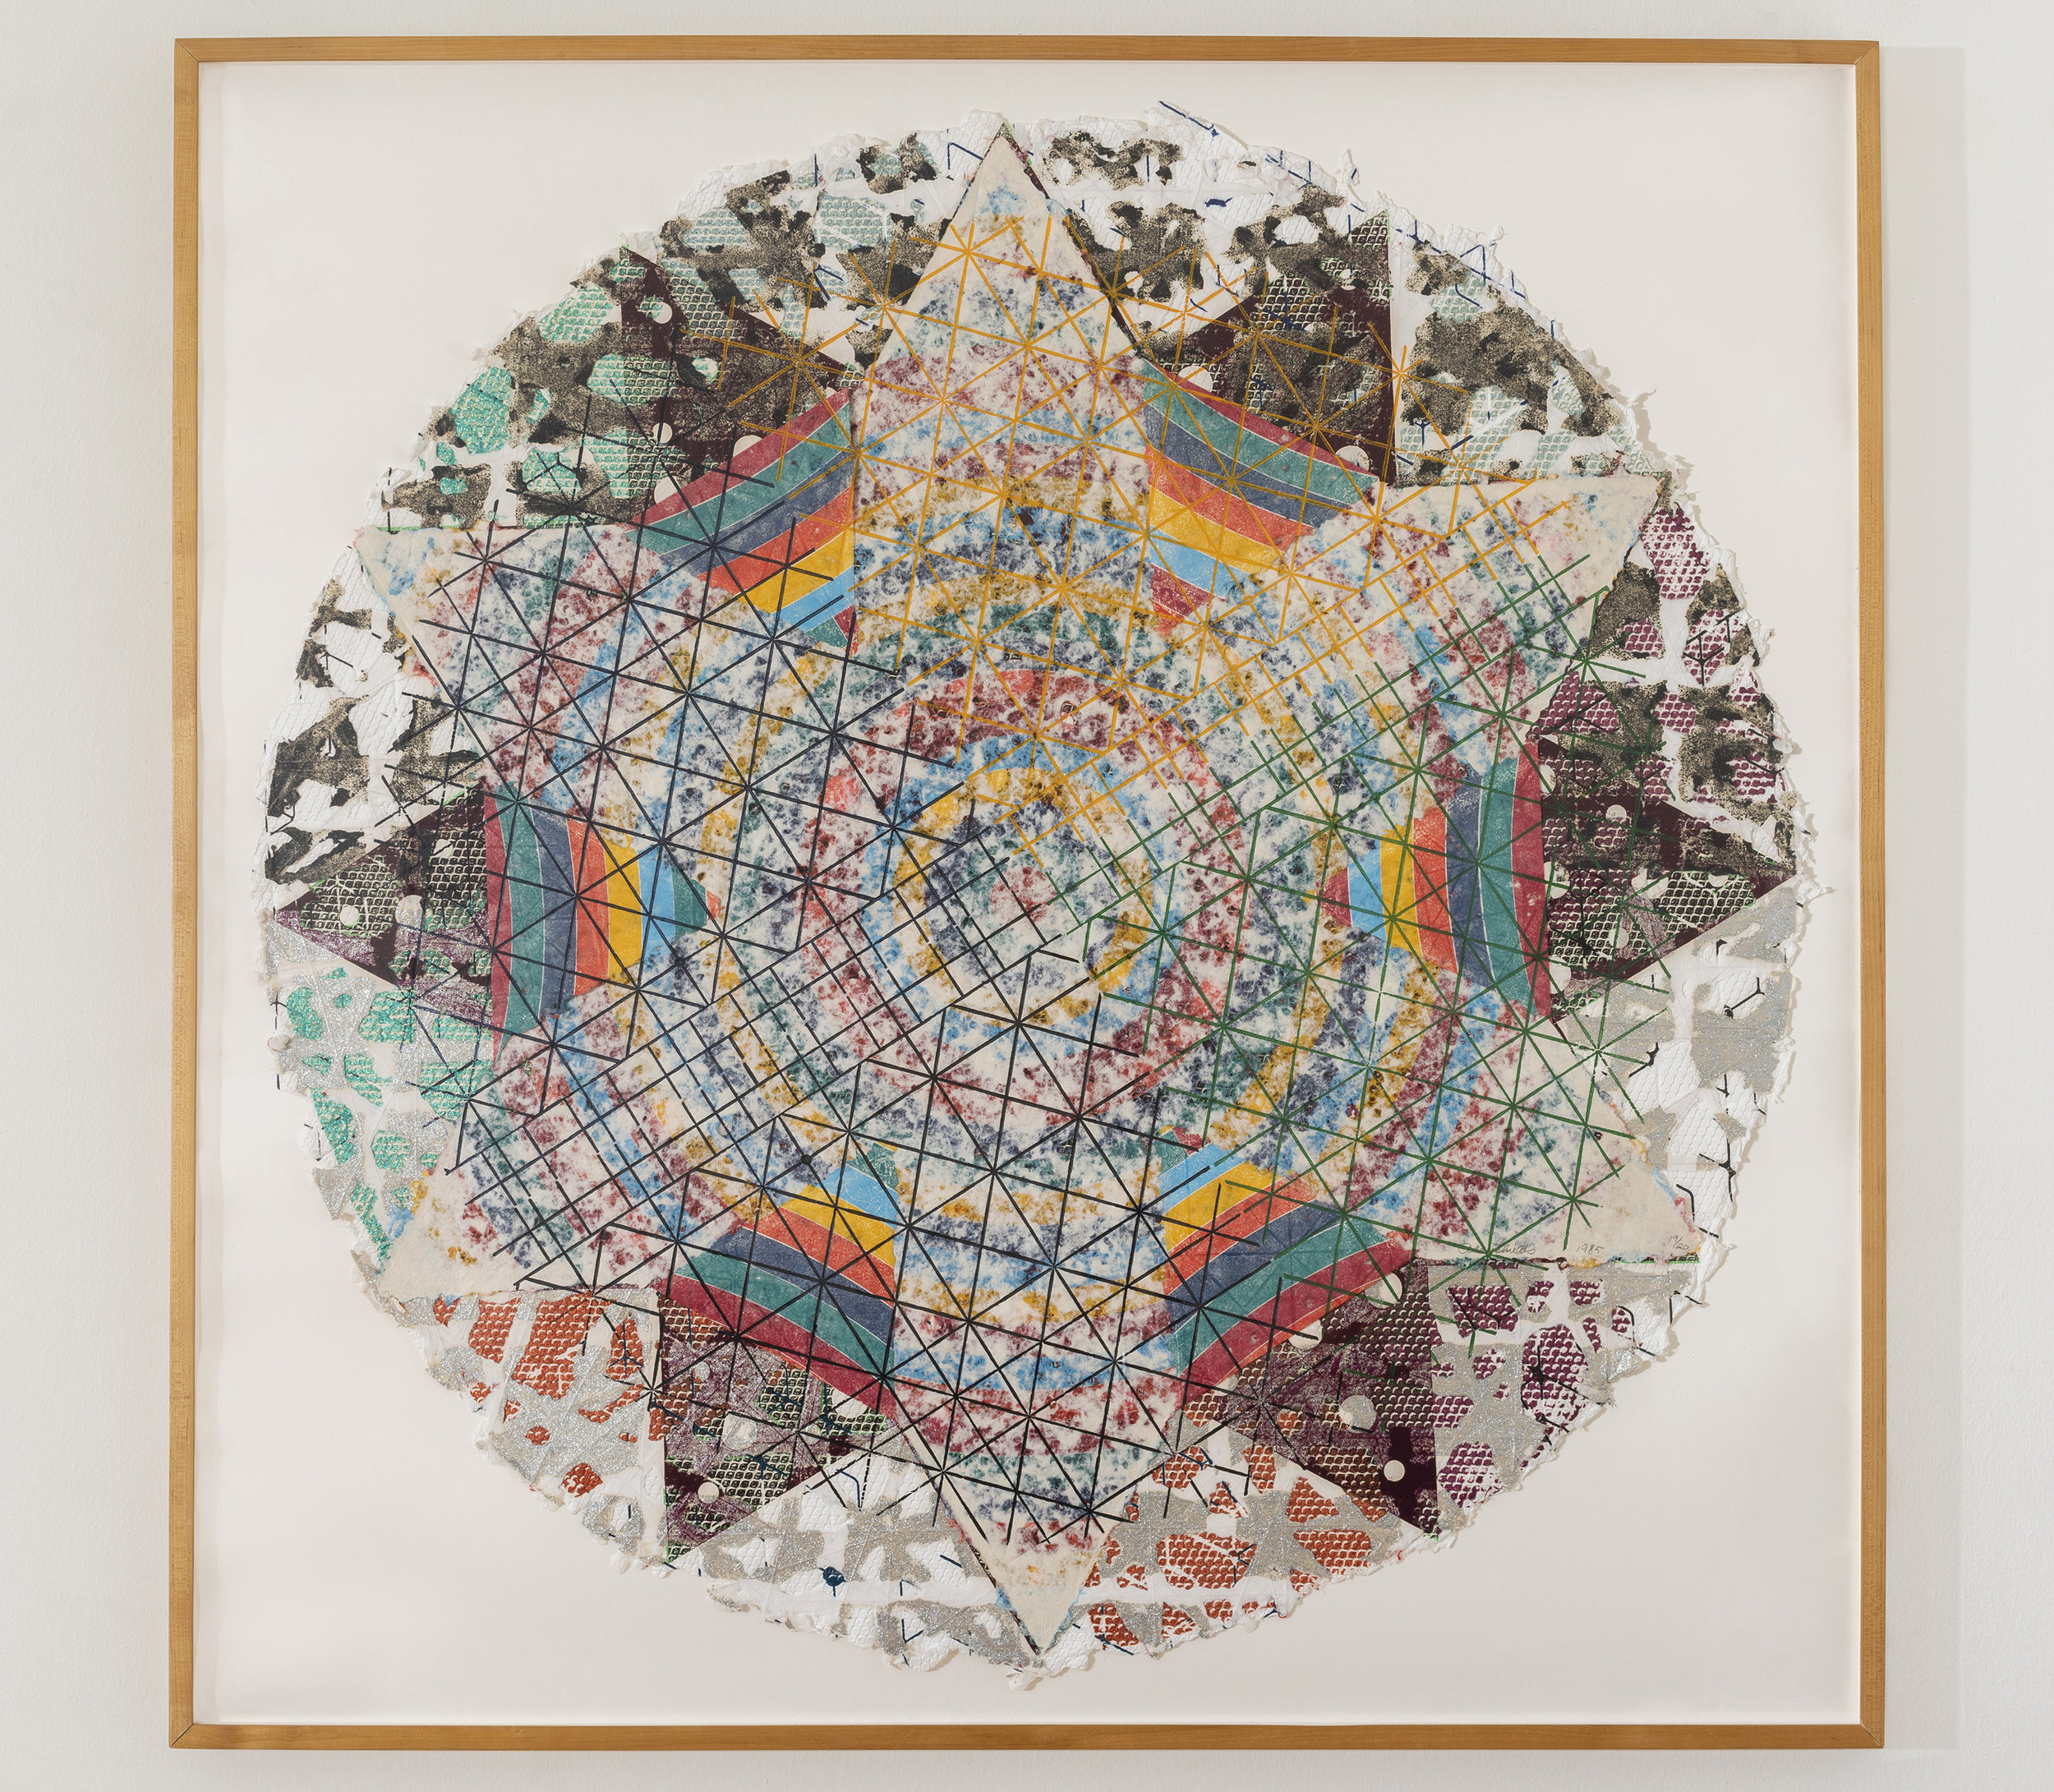 Alan Shields  Uncle Ferdinand's Route , from  The Raggedy Circumnavigation Series     1985 Relief, woodcut, silkscreen, string, stitching, glitter, on handmade paper, three layers 47 inches diameter, 52 x 52 inches framed Ed. 19/20